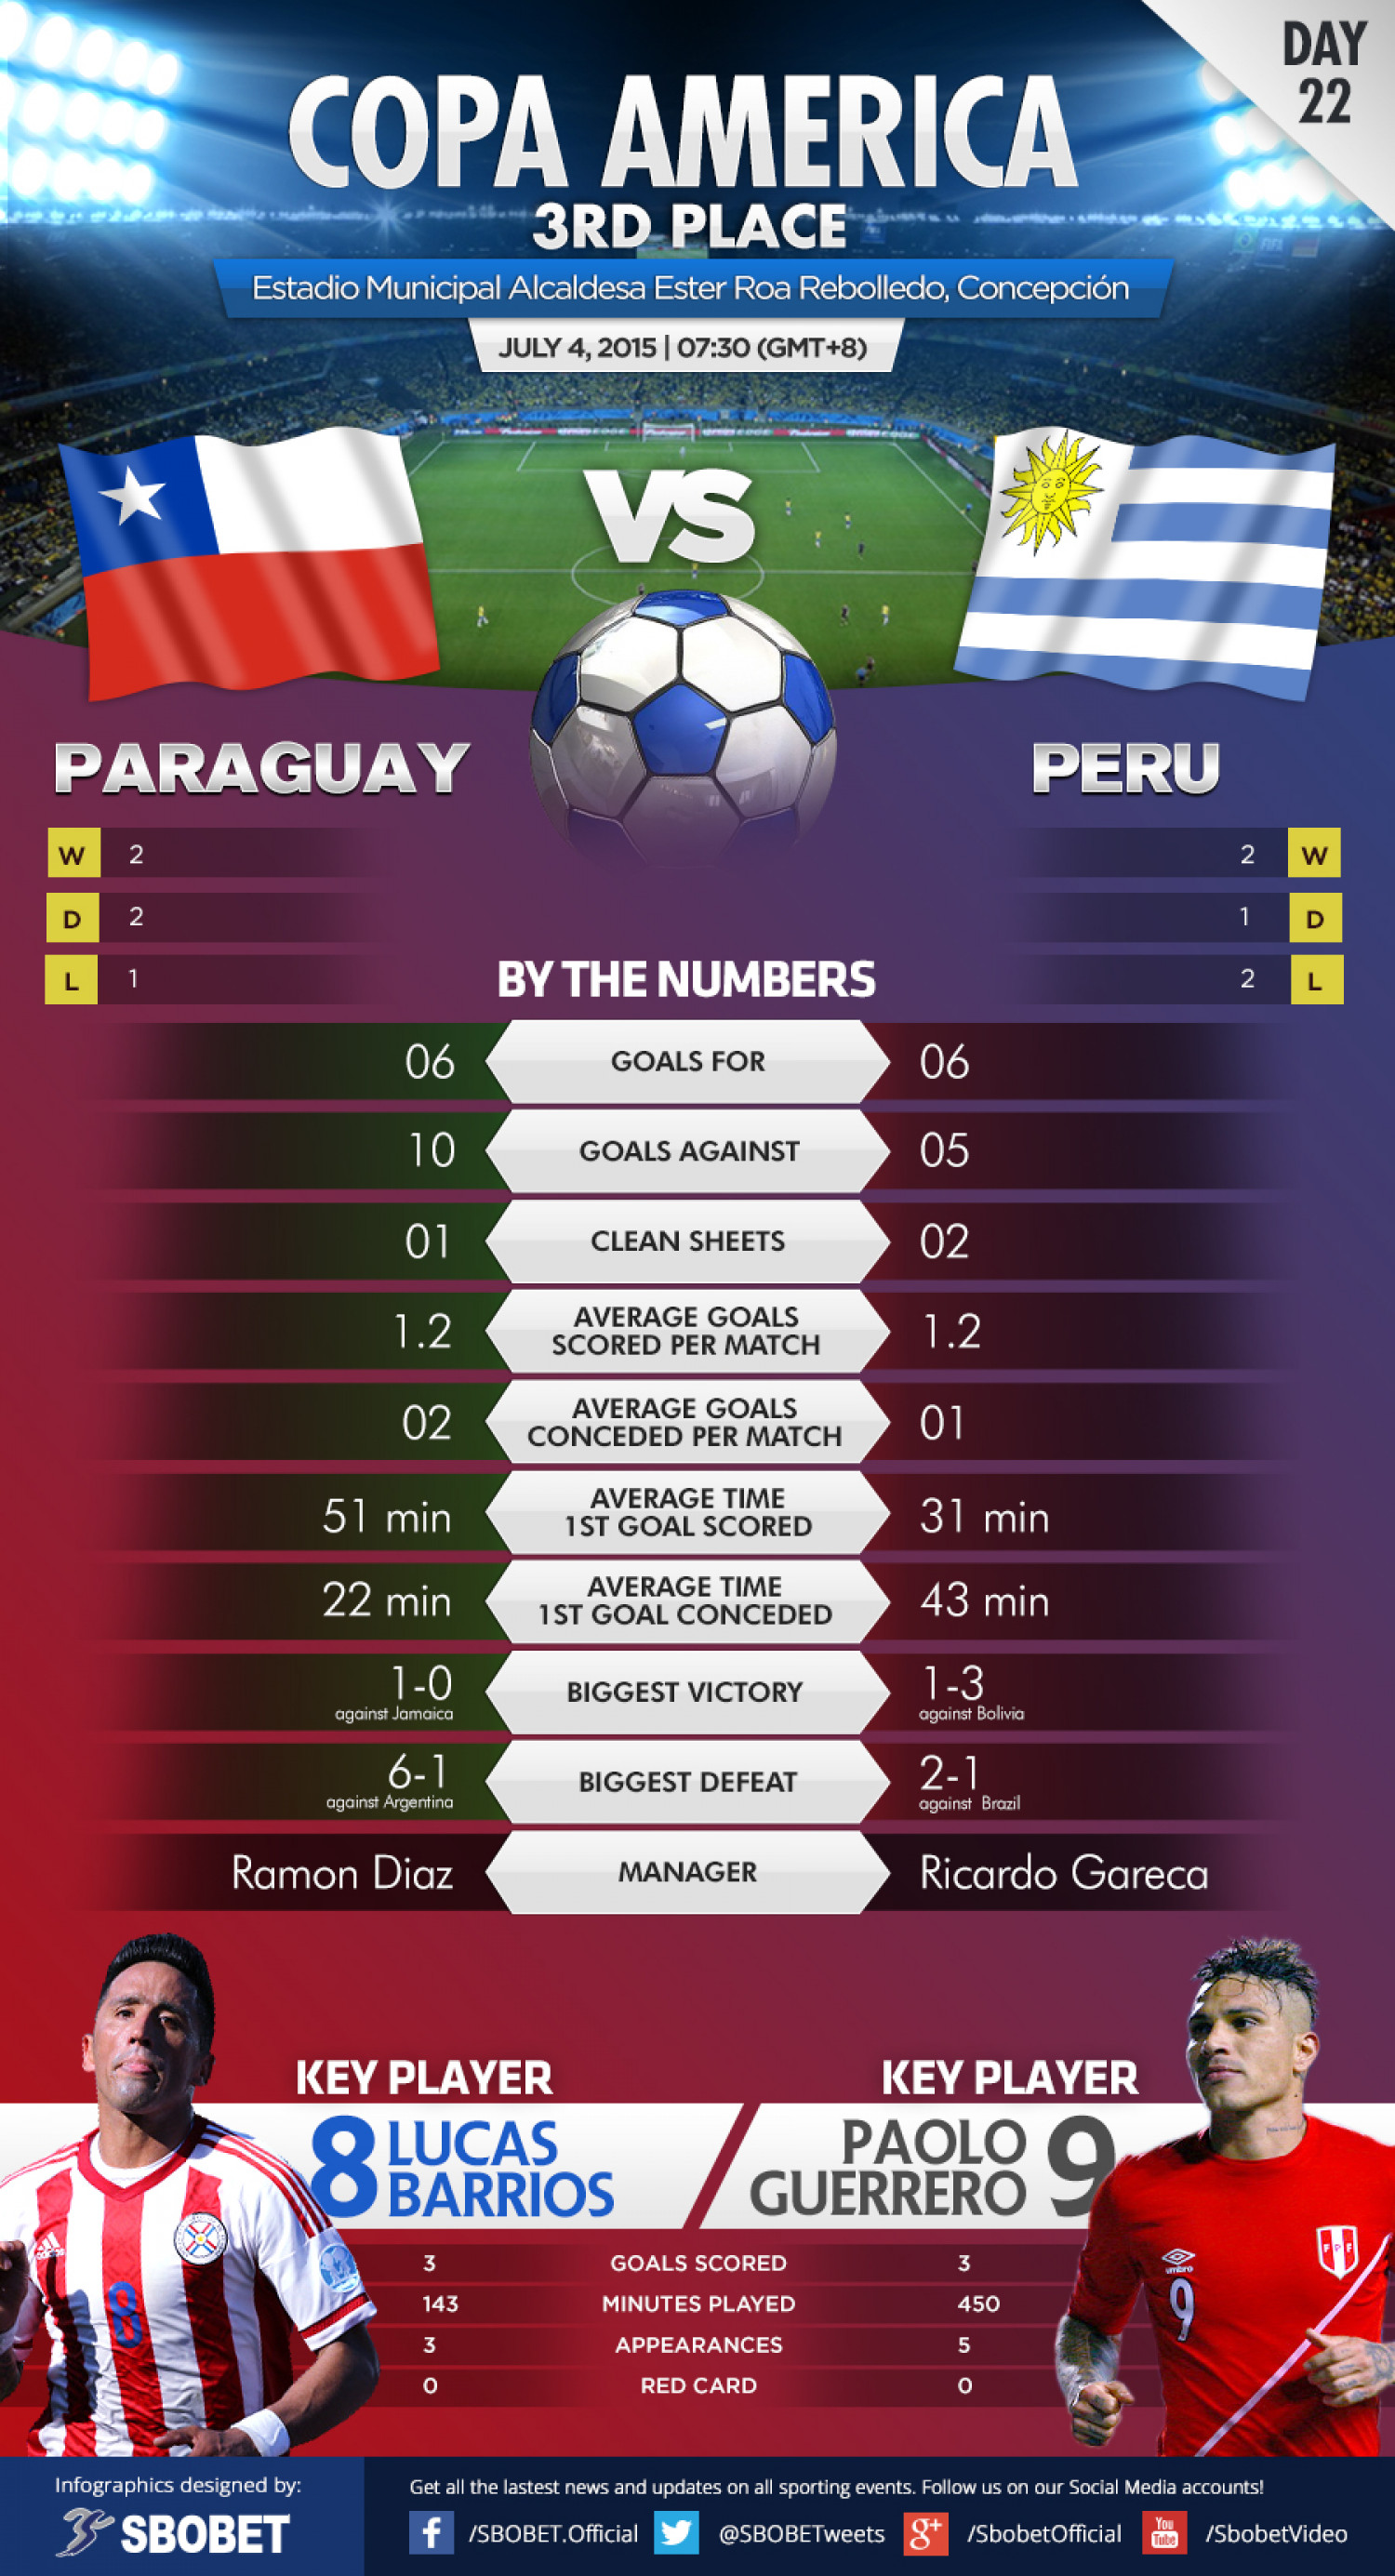 2015 Copa America - Battle for Third - Paraguay vs Peru Infographic